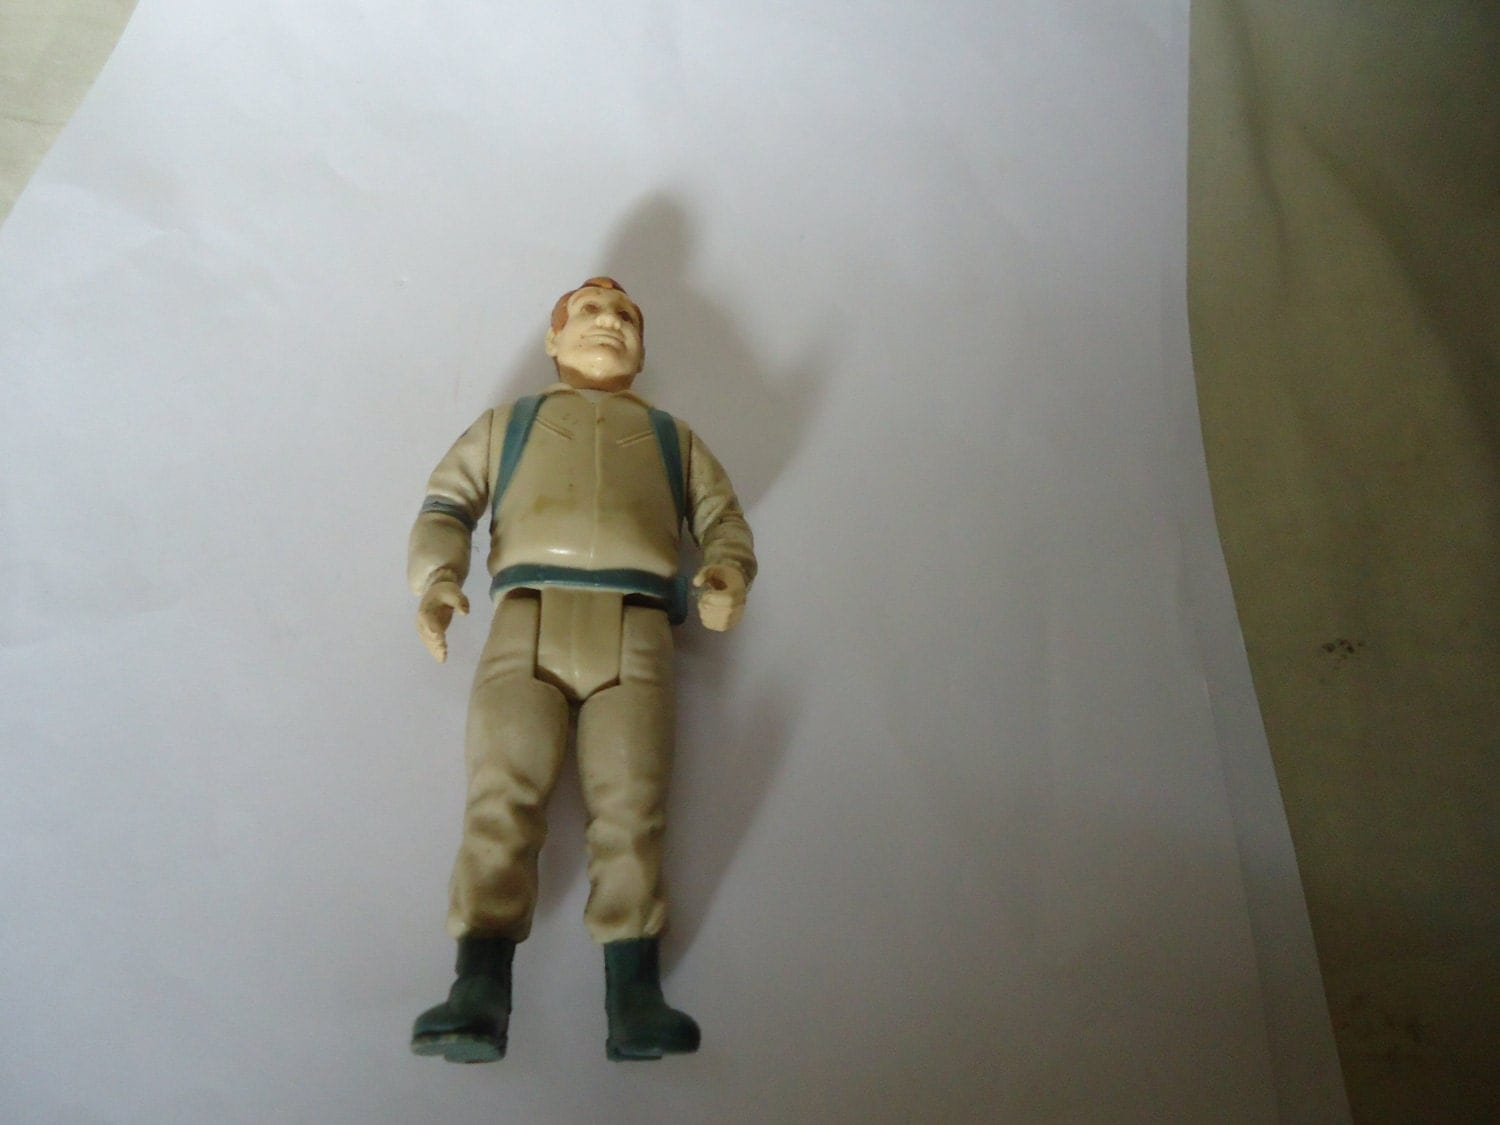 Vintage 1984 Ghostbusters Ray Stantz Action Figure By